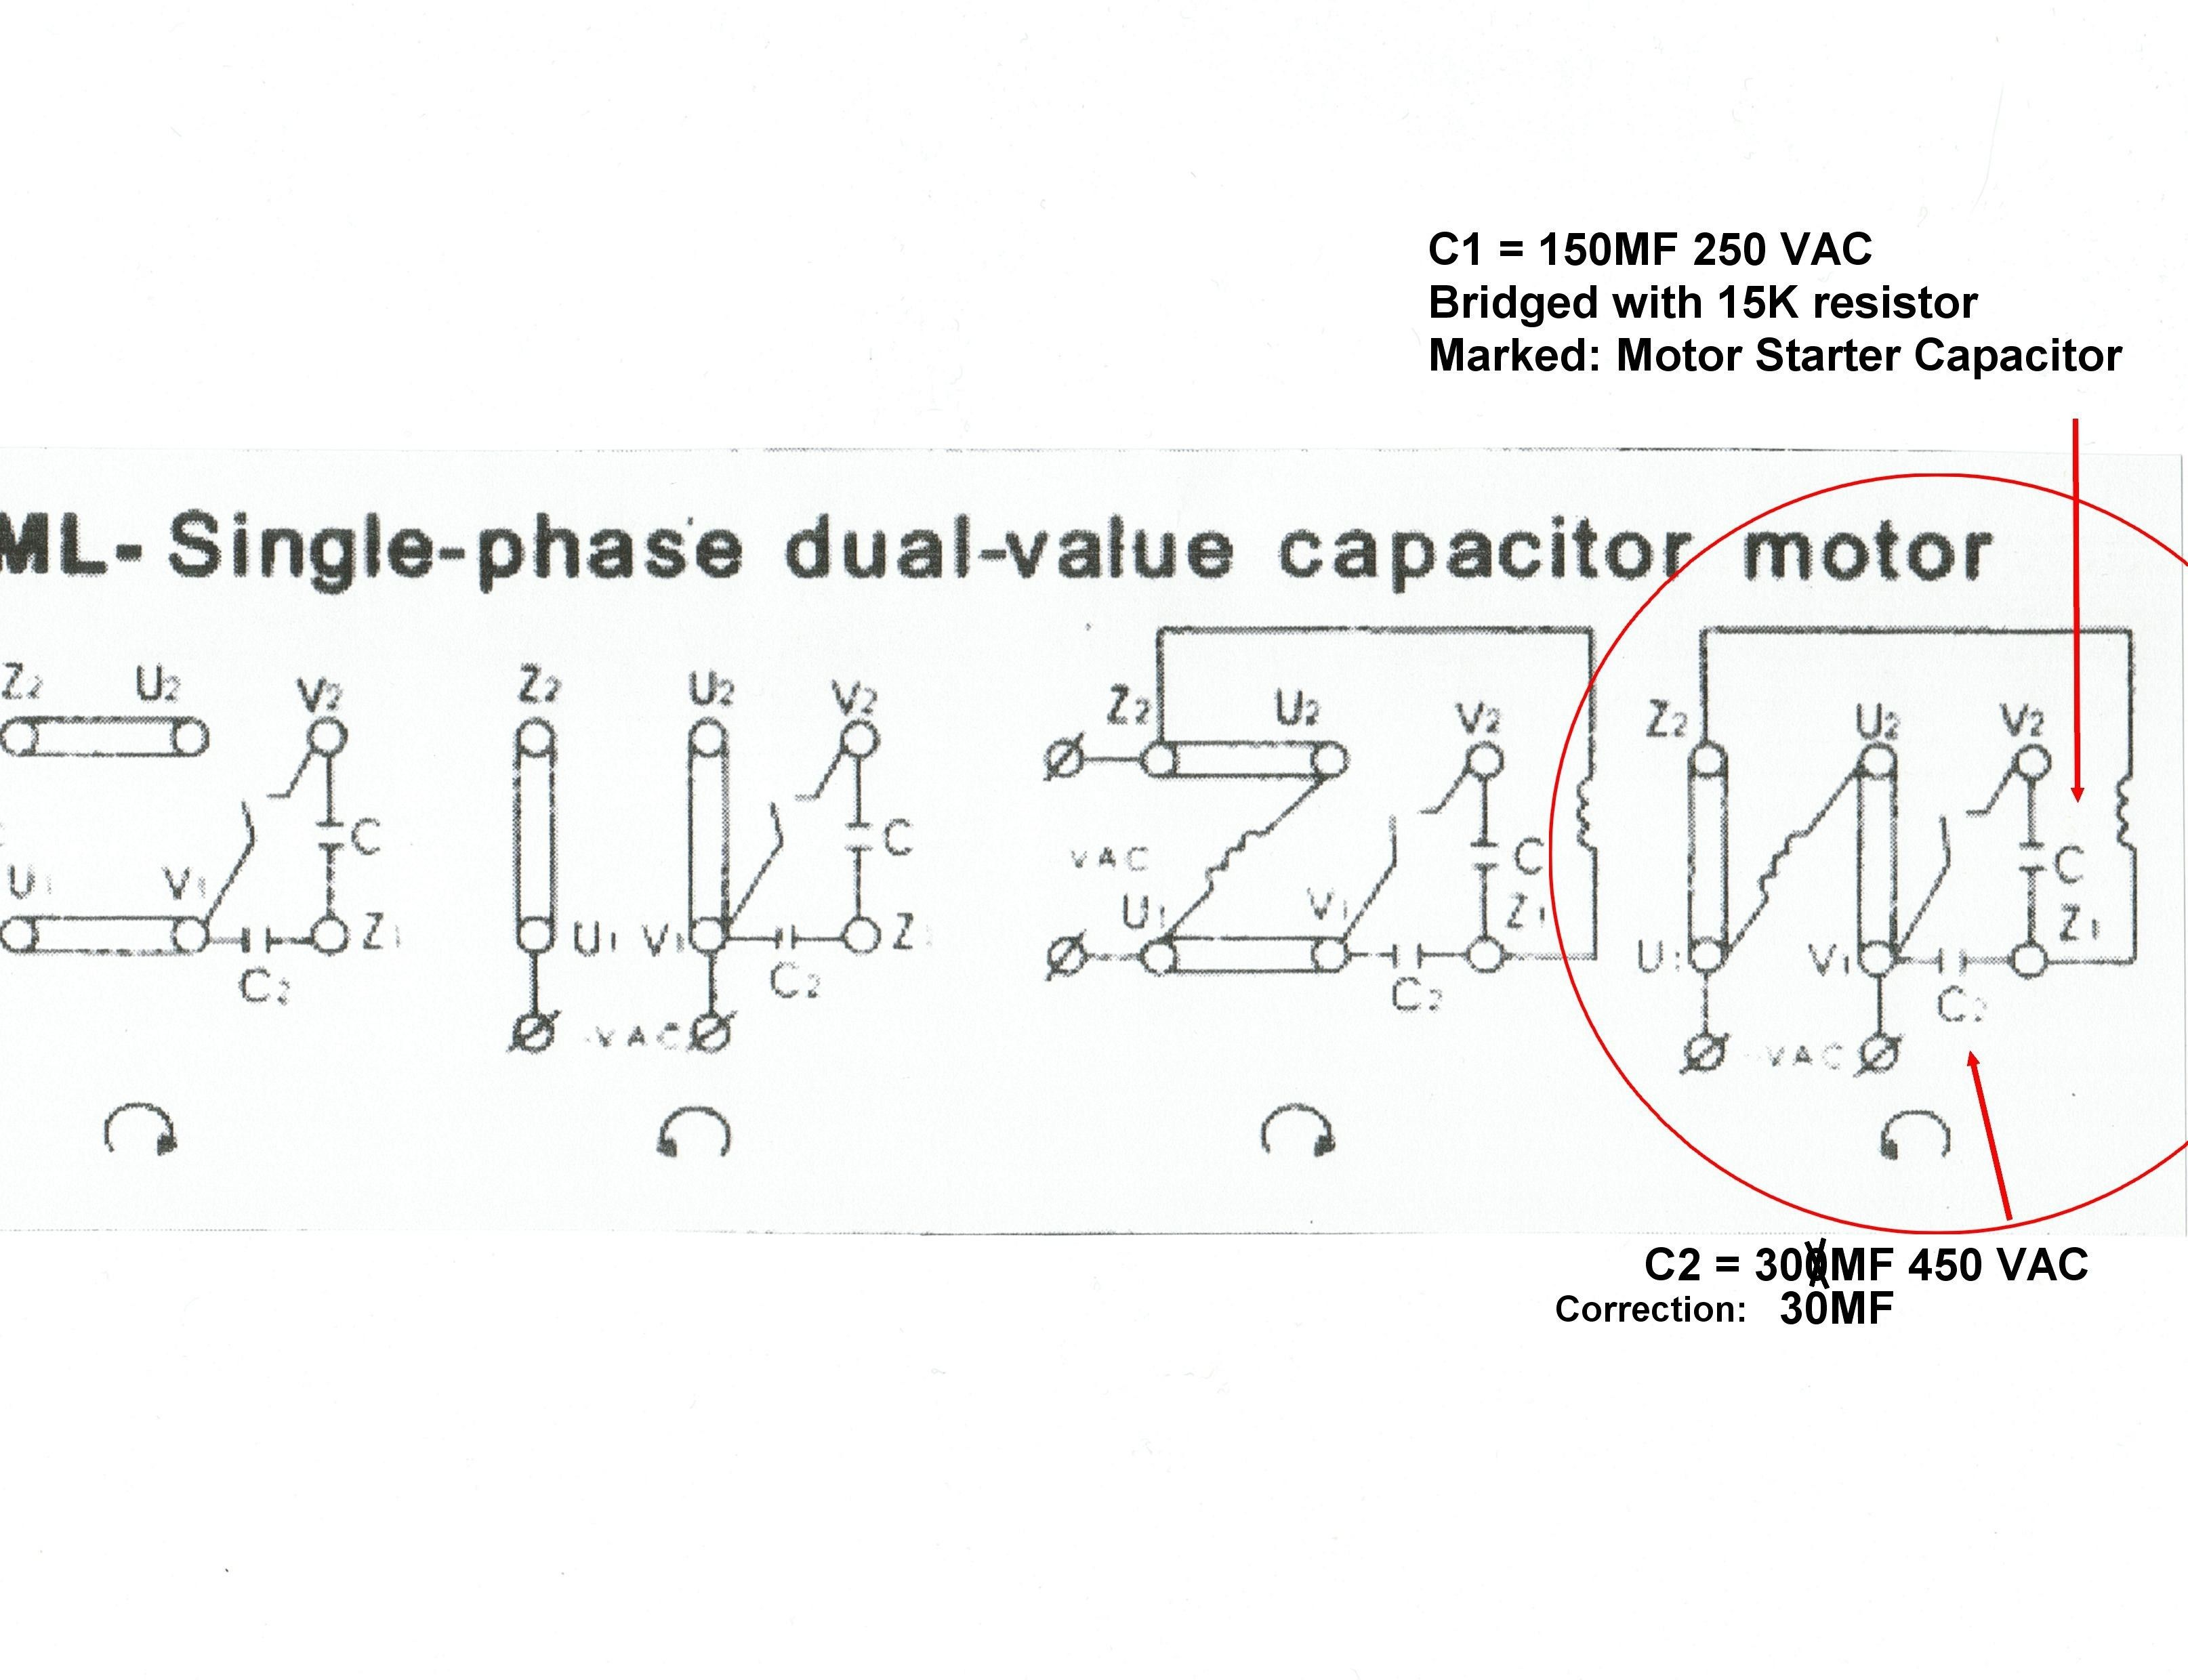 6 Lead Single Phase Motor Wiring Diagram Luxury Excellent Dual